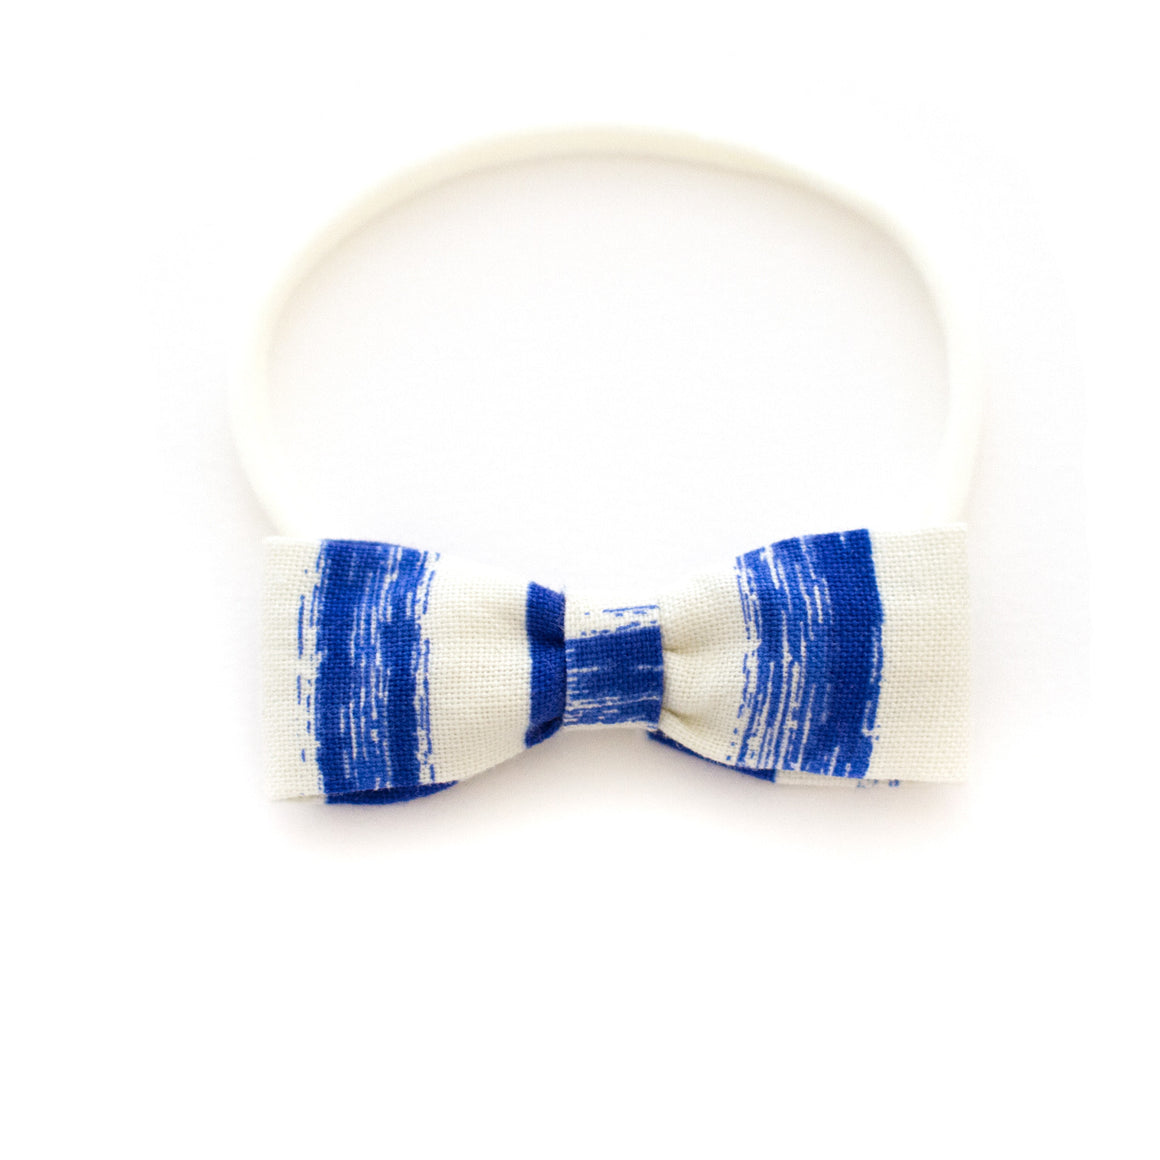 blue stripe baby headband by mane message created in the bay area